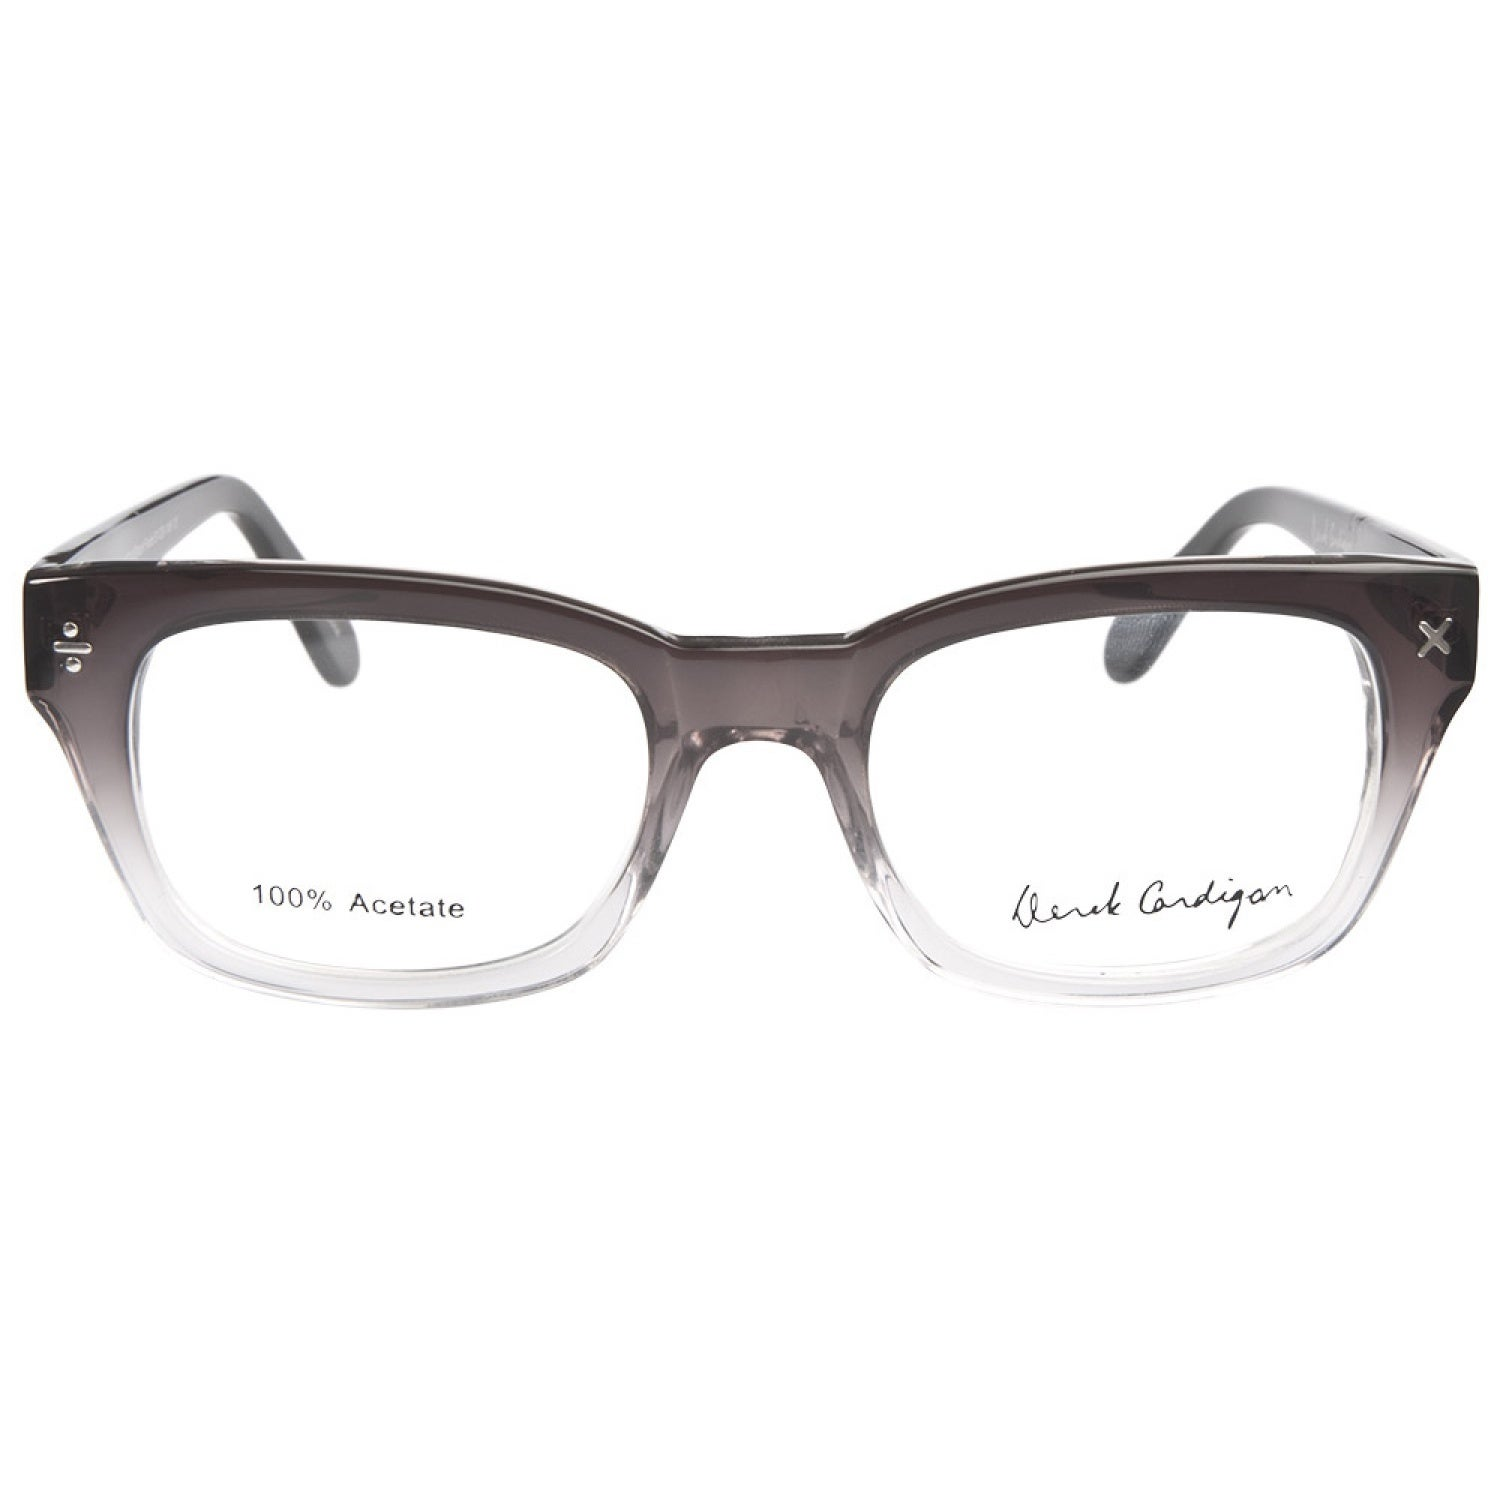 f0c26504394 Shop Derek Cardigan 7014 Black Fade Prescription Eyeglasses - Free Shipping  Today - Overstock - 8621723